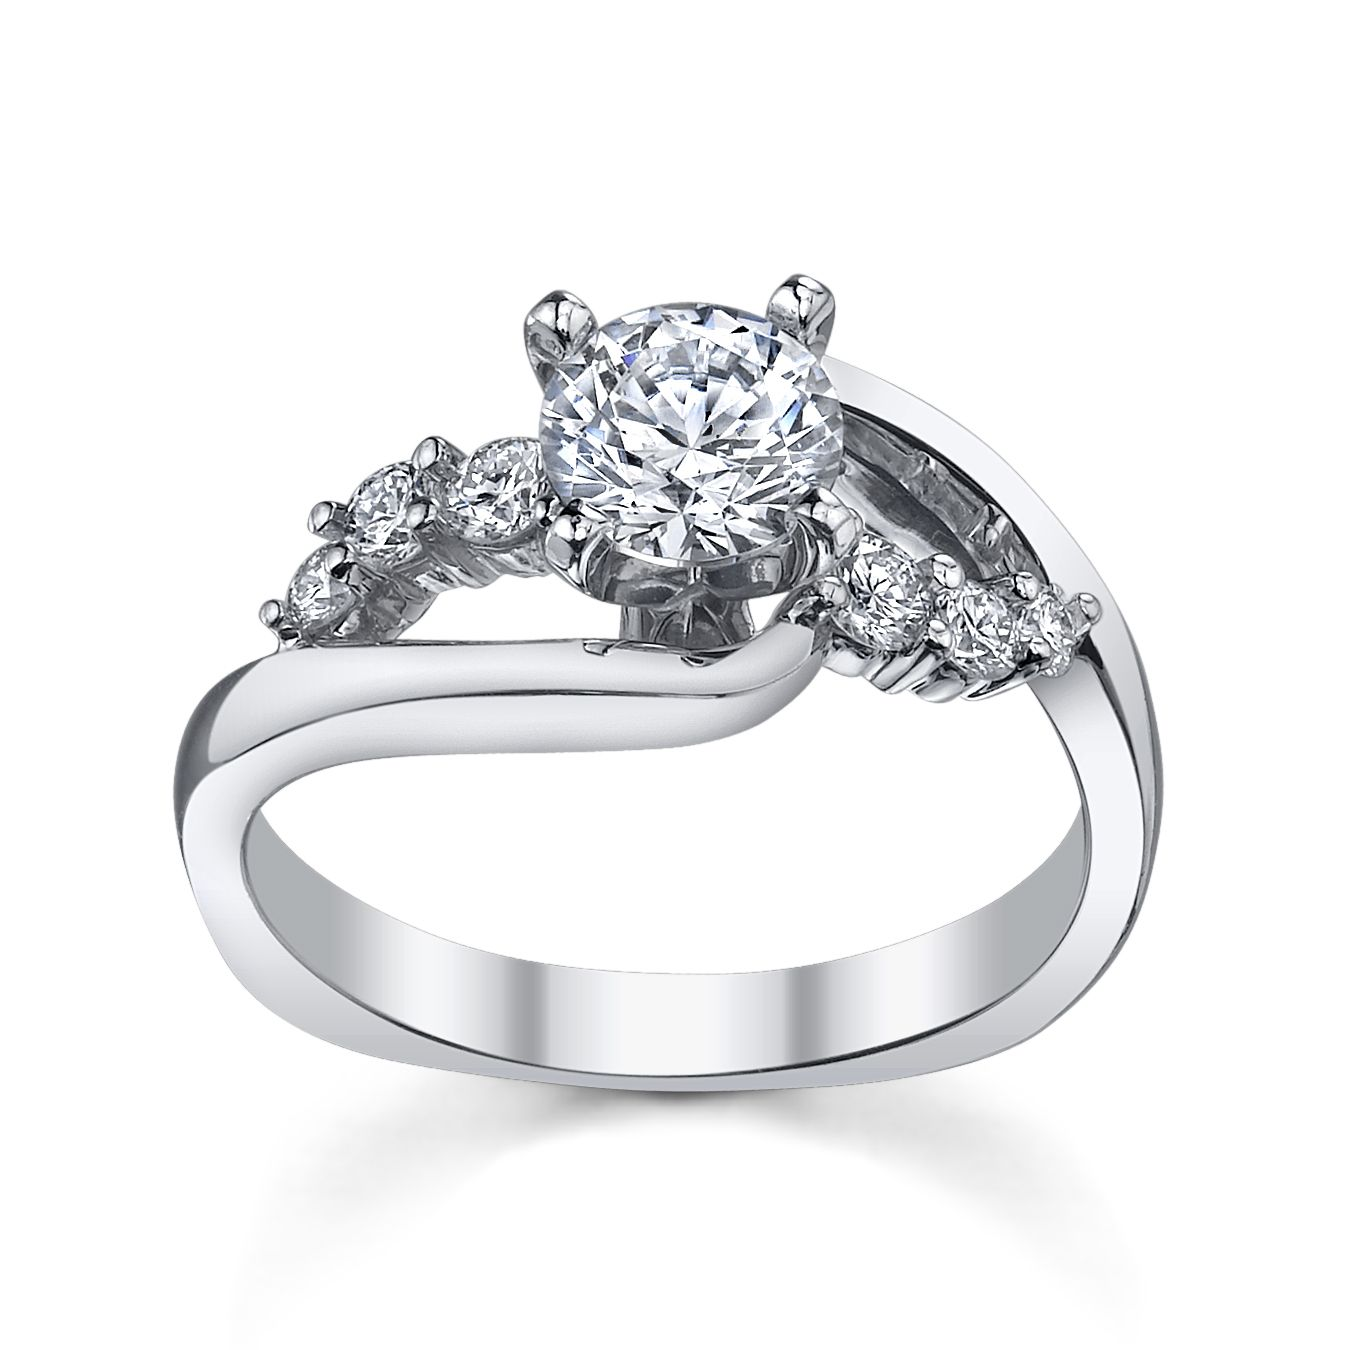 Modern Wedding Rings - Modern engagement ring from robbins brothers